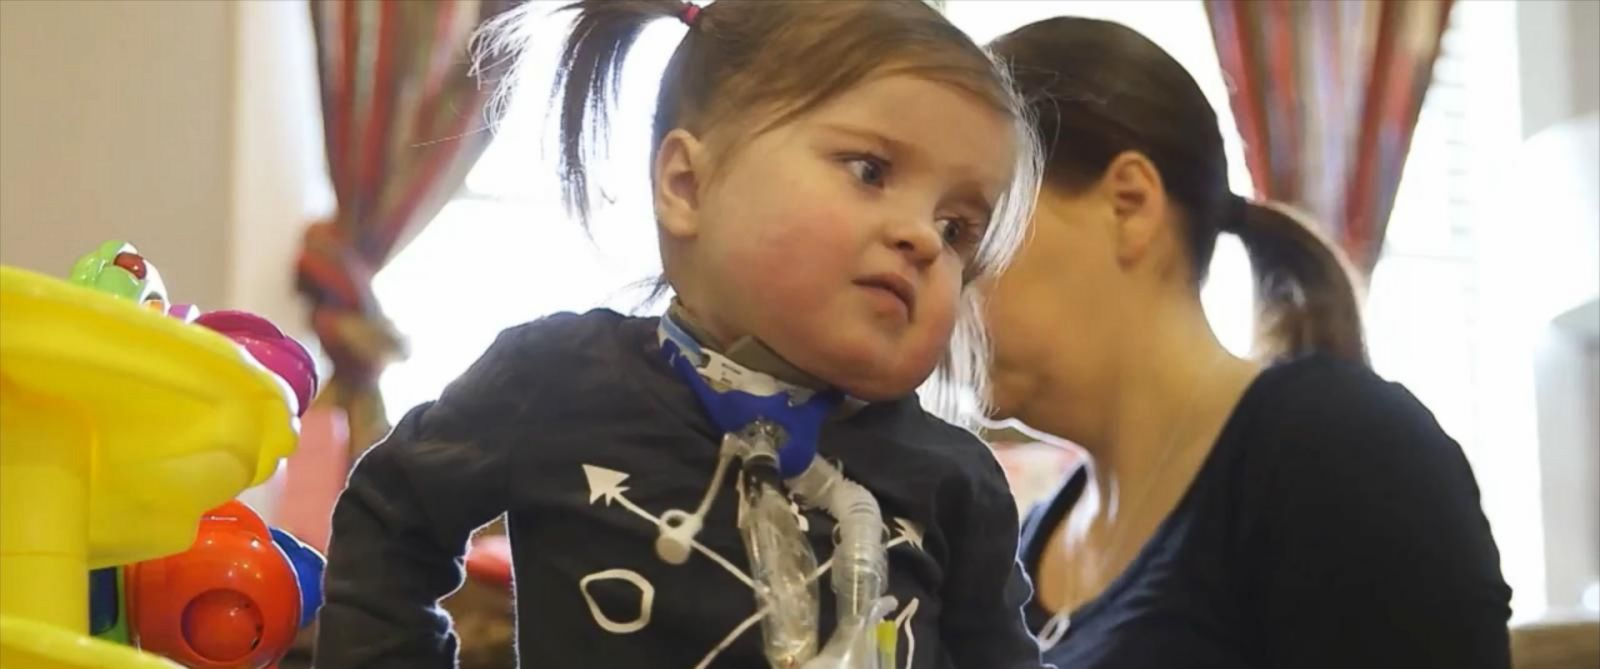 PHOTO:Zoey Jones is back home after having multiple surgeries to fix a heart defect.